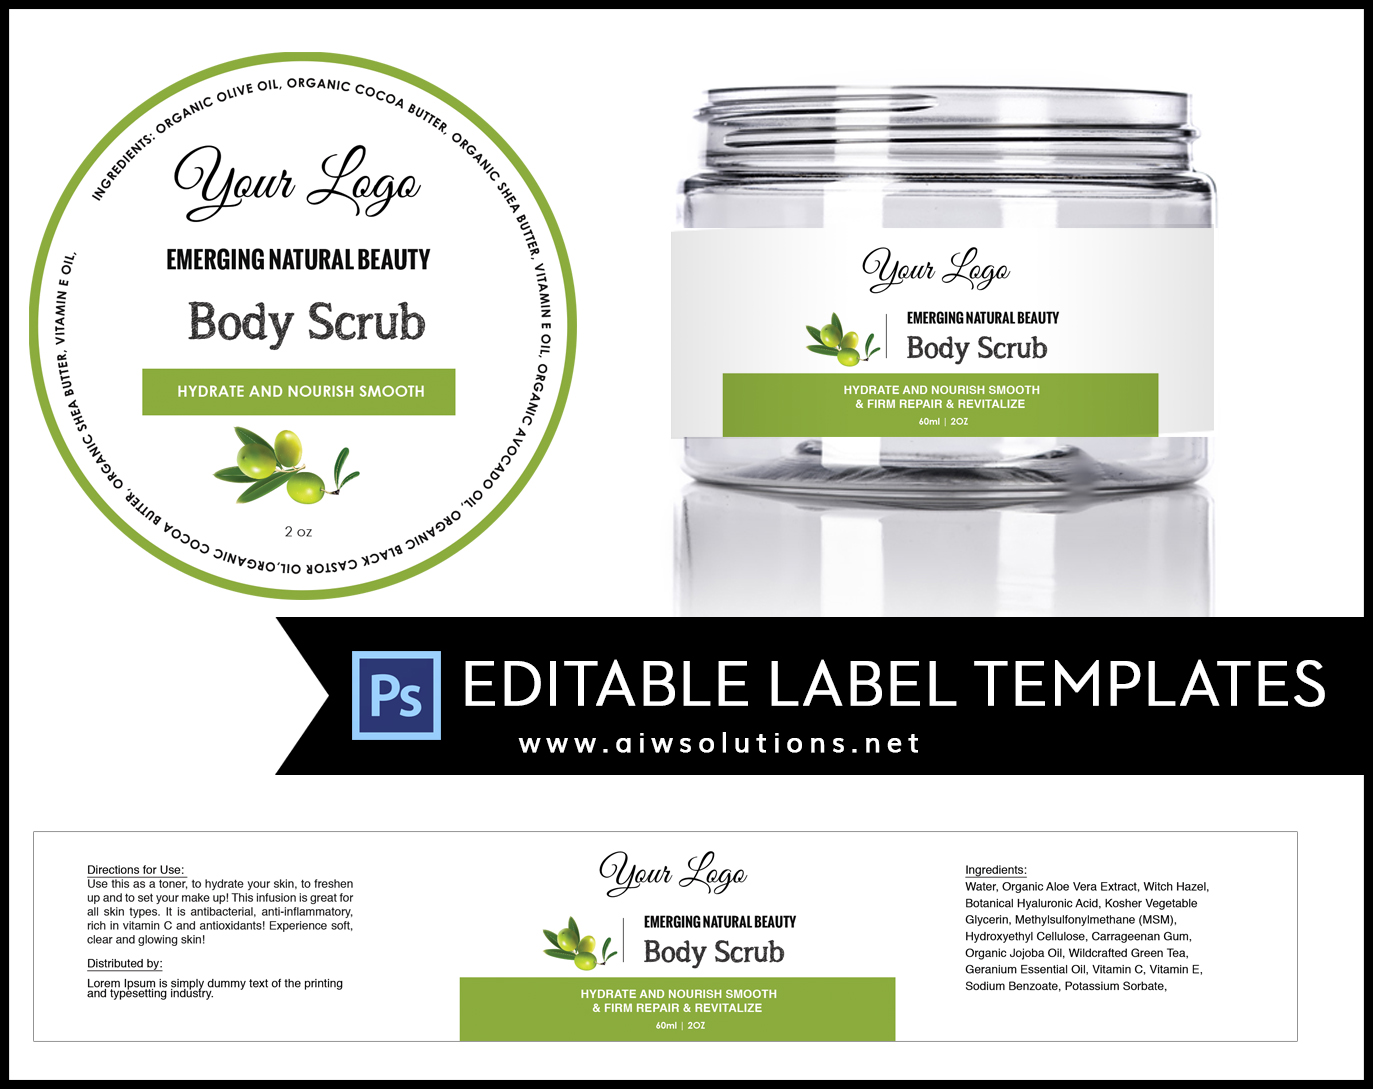 Label template ID17 aiwsolutions